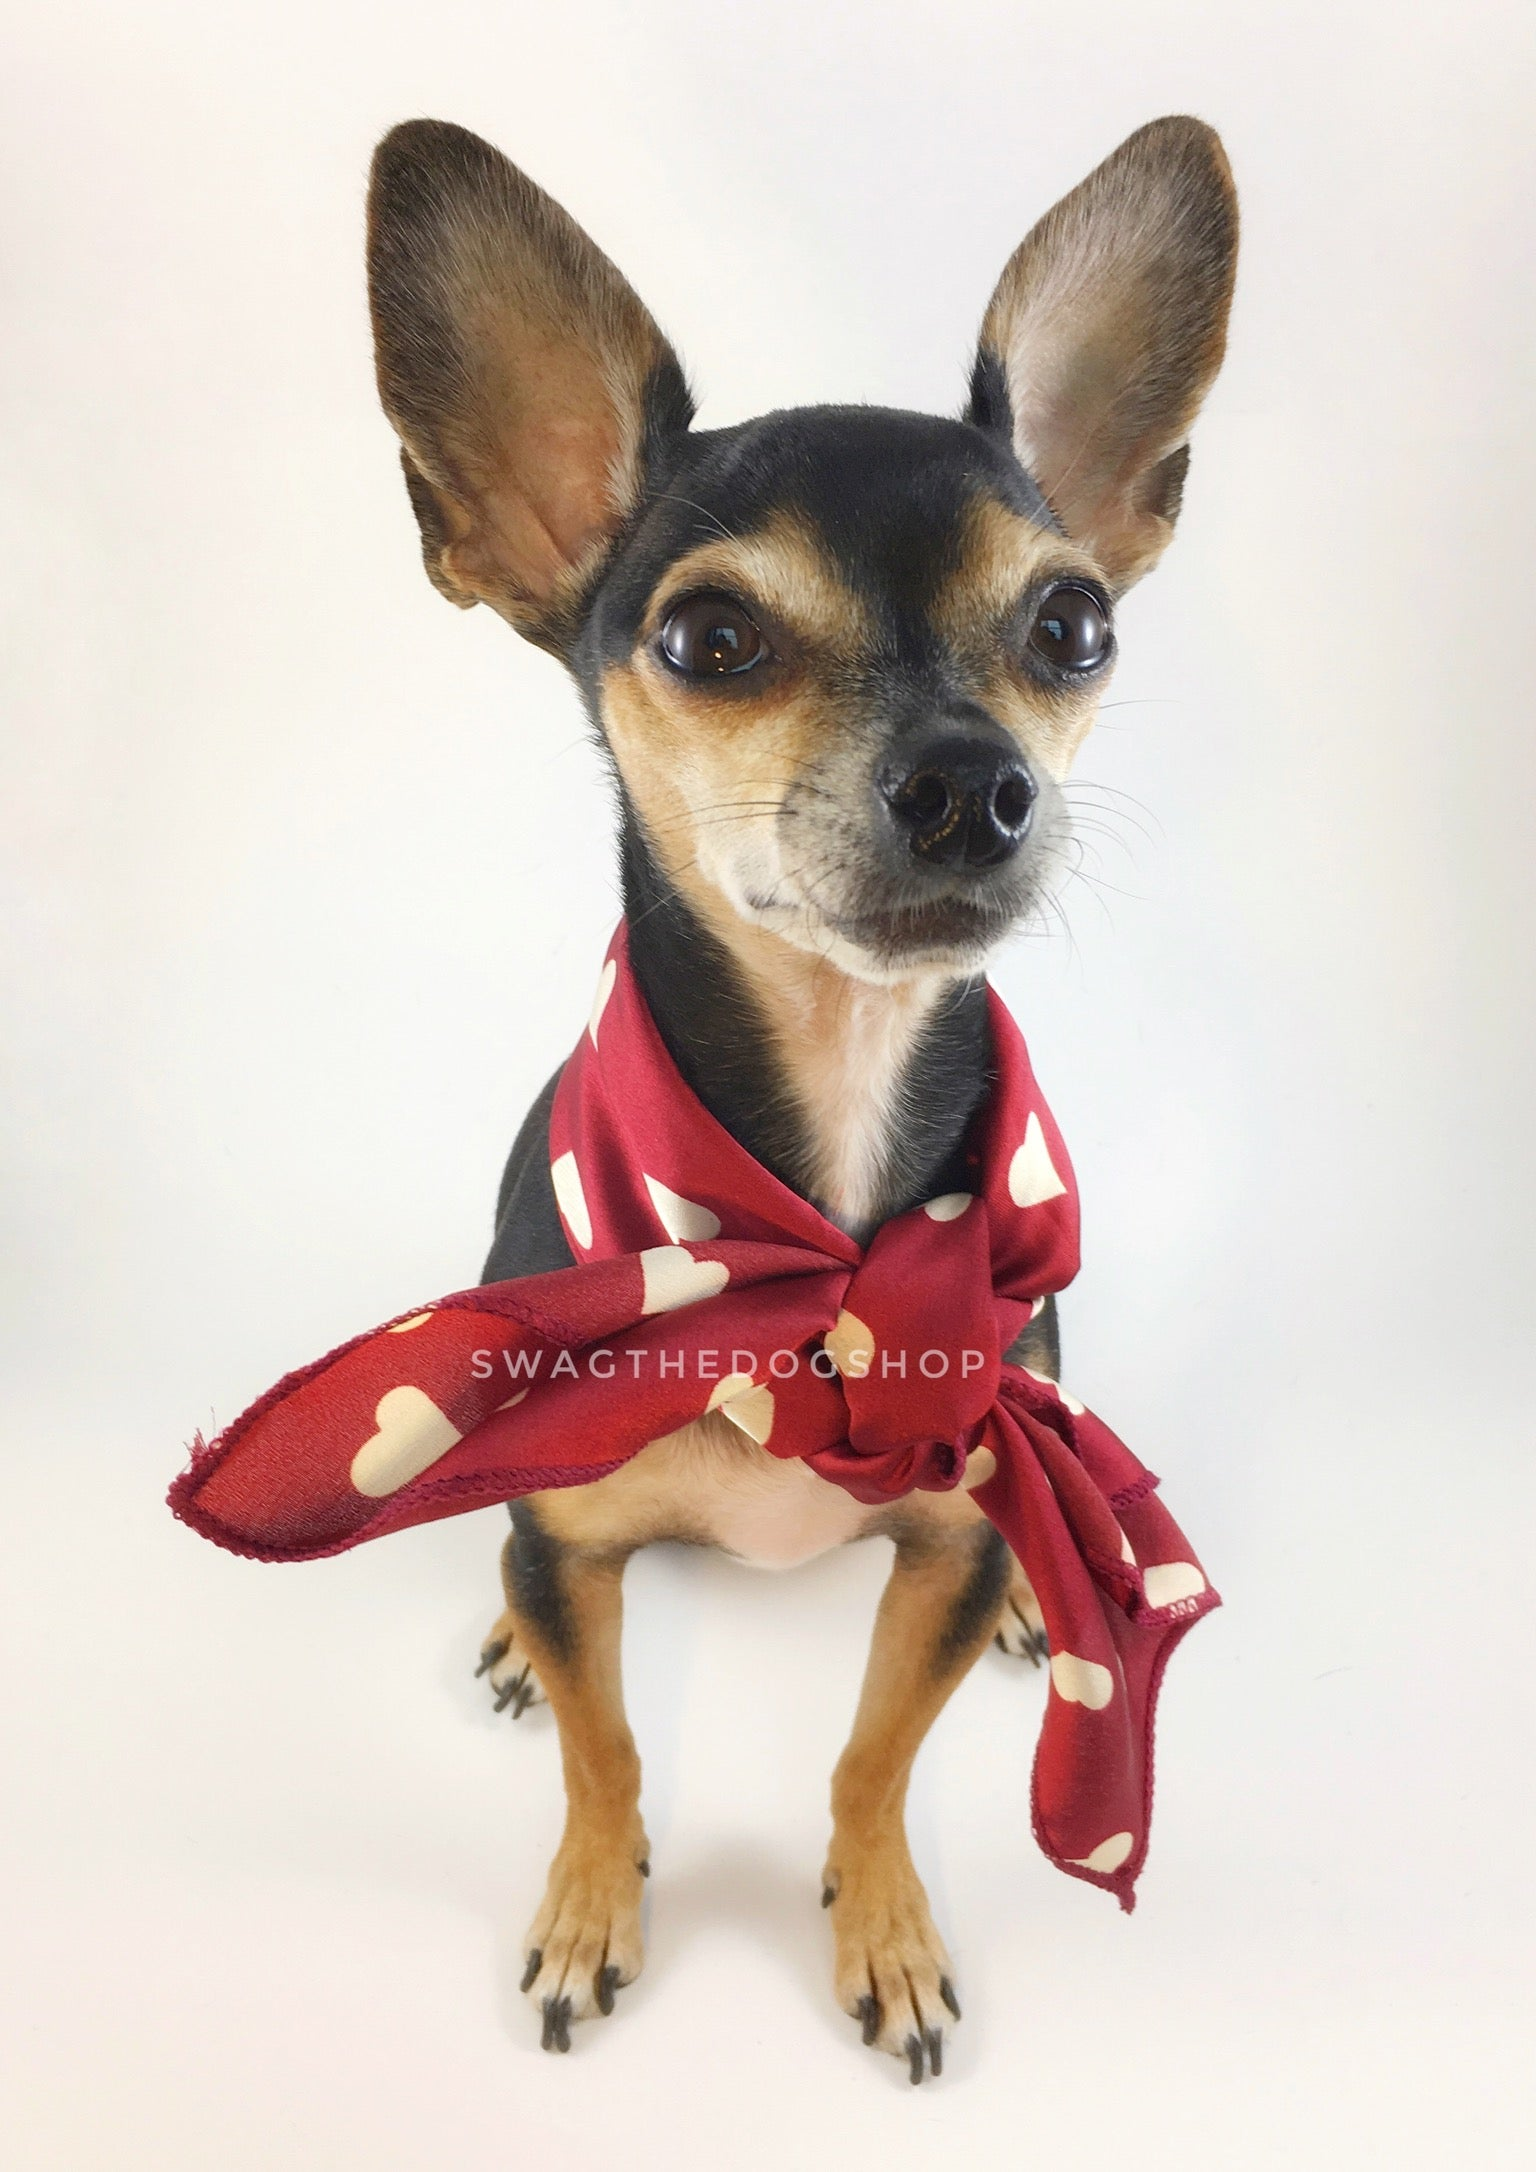 Full of Heart Red Swagdana Scarf - Full Front View of Cute Chihuahua Wearing Swagdana Scarf as Neck Scarf. Dog Bandana. Dog Scarf.